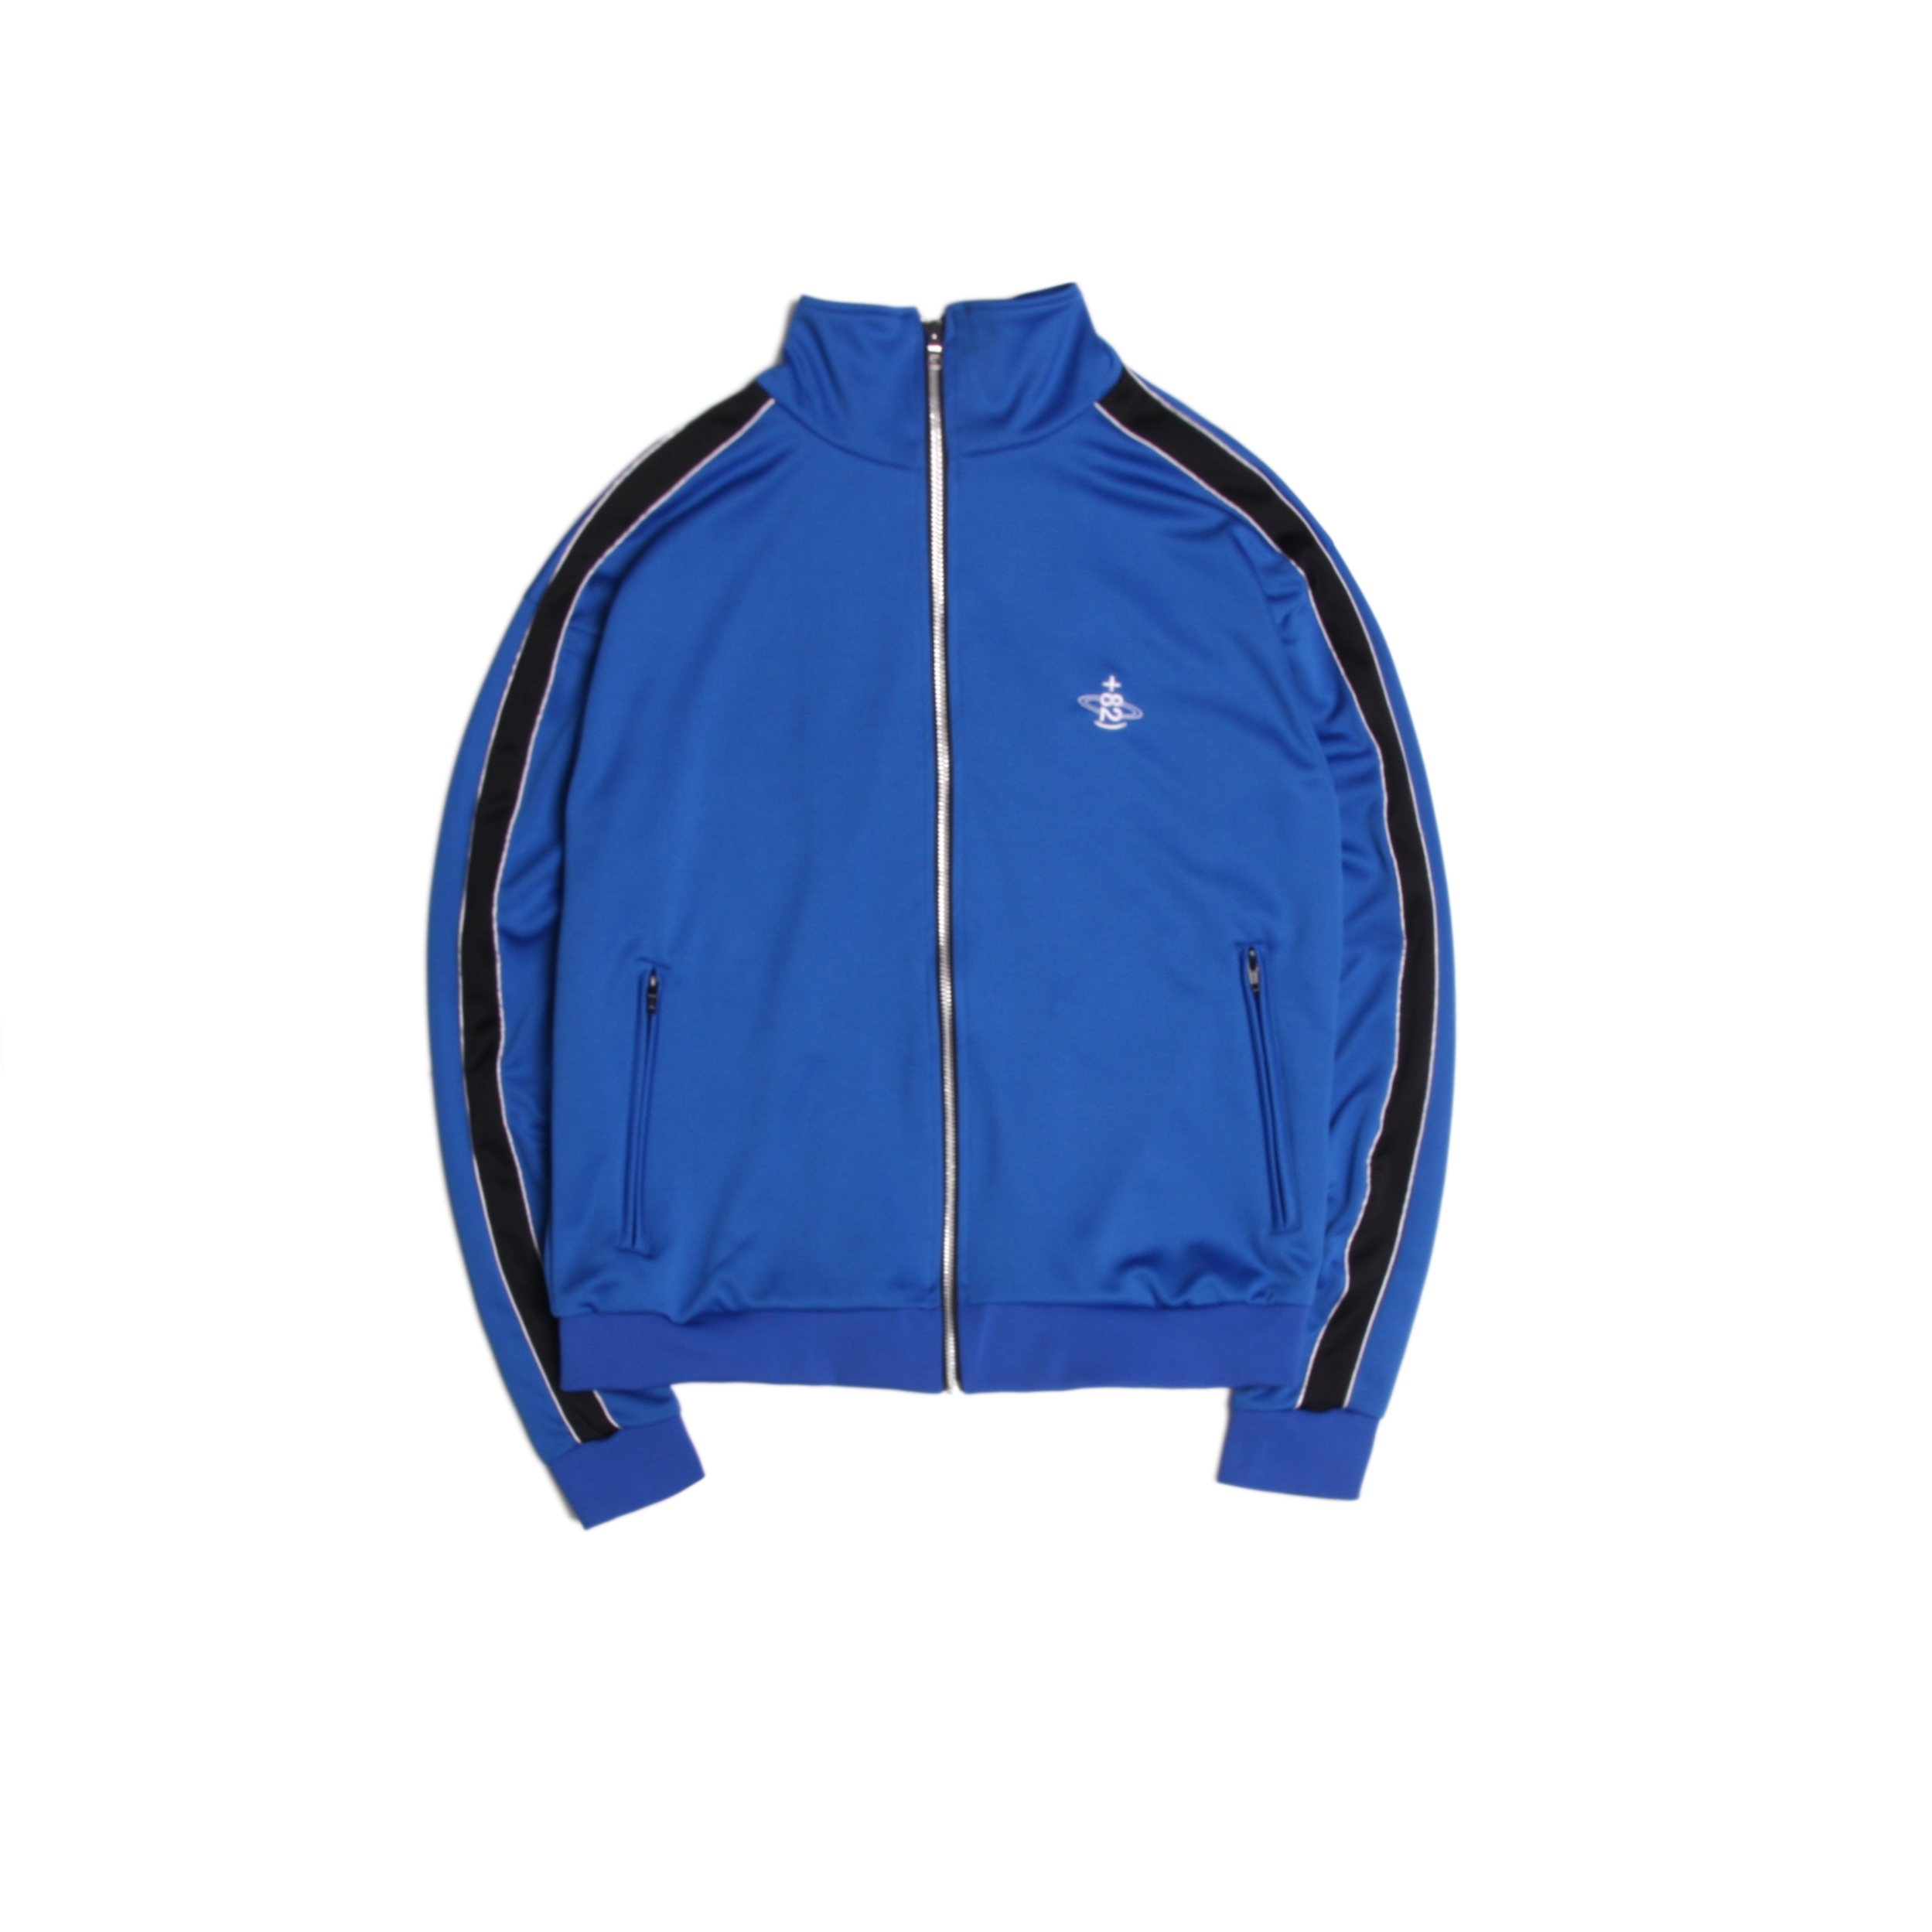 [DUCKDIVE]+82 TRAINING TRACK TOP _BLUE